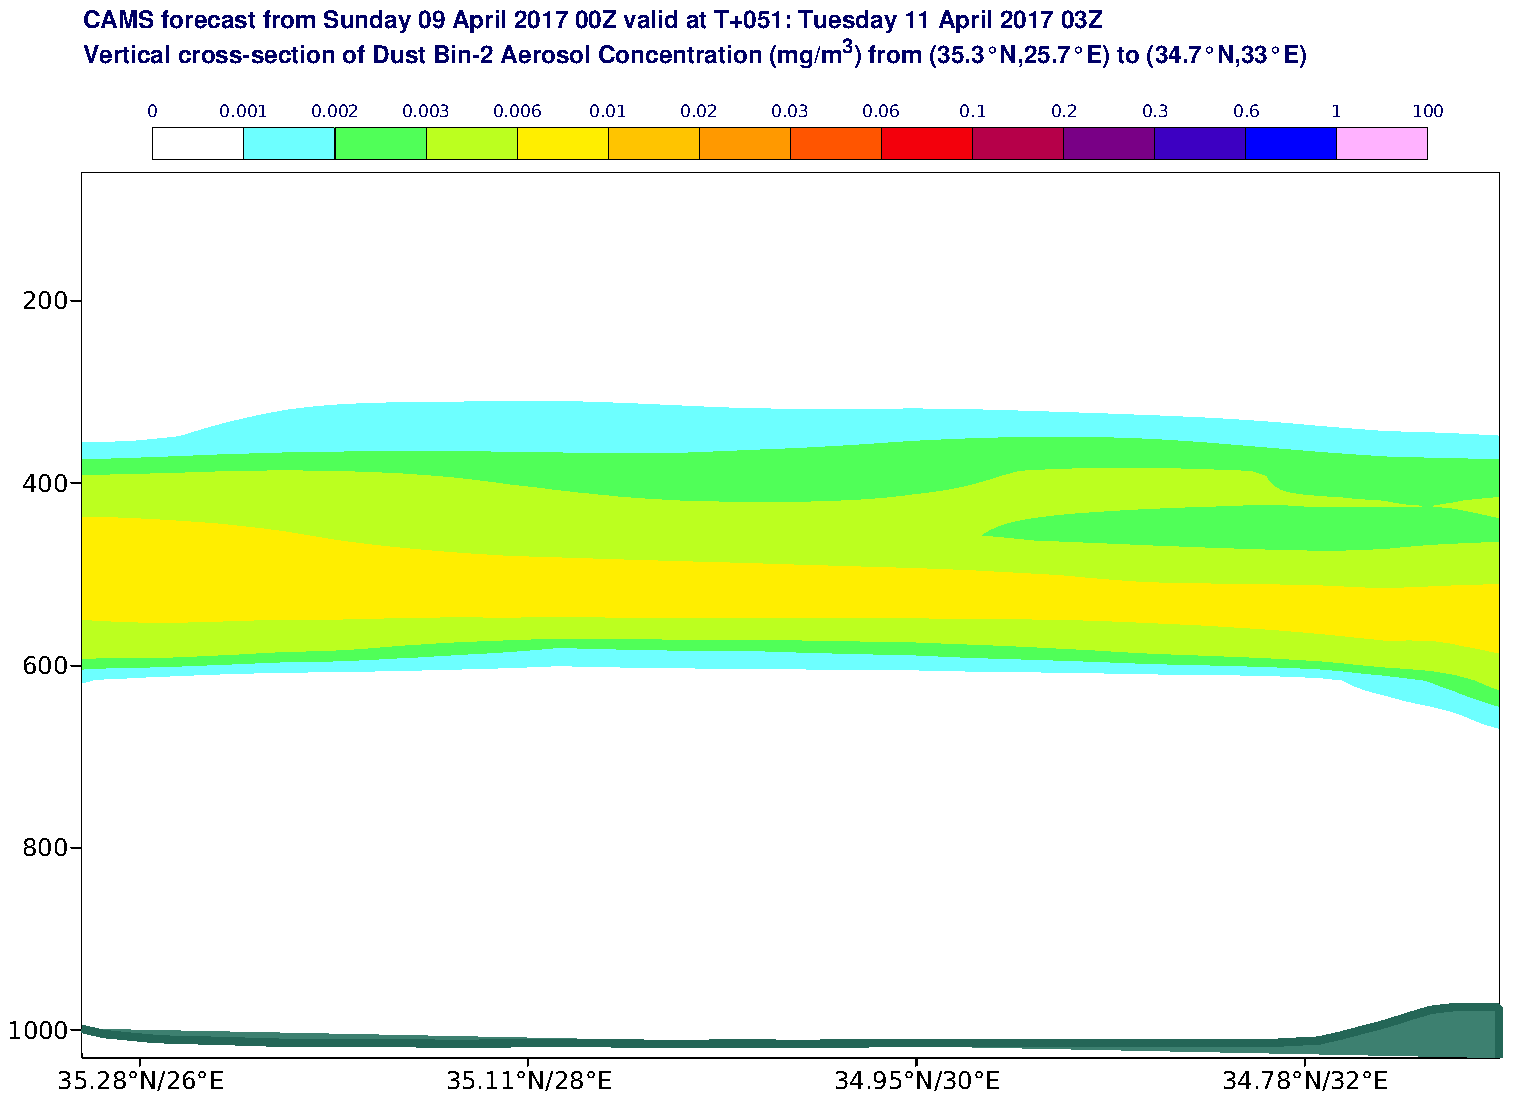 Vertical cross-section of Dust Bin-2 Aerosol Concentration (mg/m3) valid at T51 - 2017-04-11 03:00